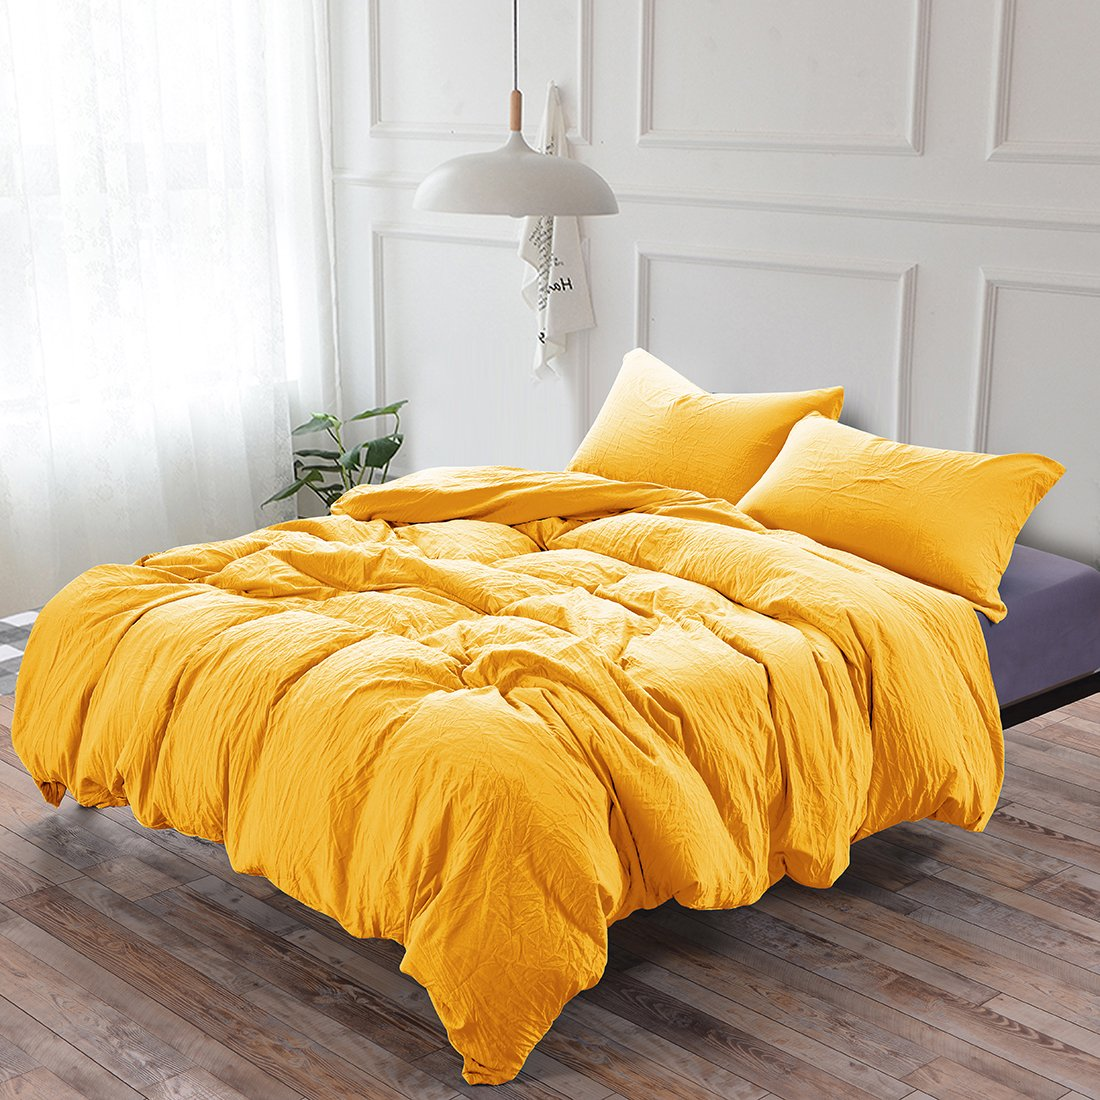 Whitney Home Textile Egyptian Quality 1800 Thread Count Stone Washed Microfiber Duvet Cover Set 2 Pieces - Hypoallergenic Quilt Case - Fade Stain Resistant Comforter Cover - Bedding Yellow Twin